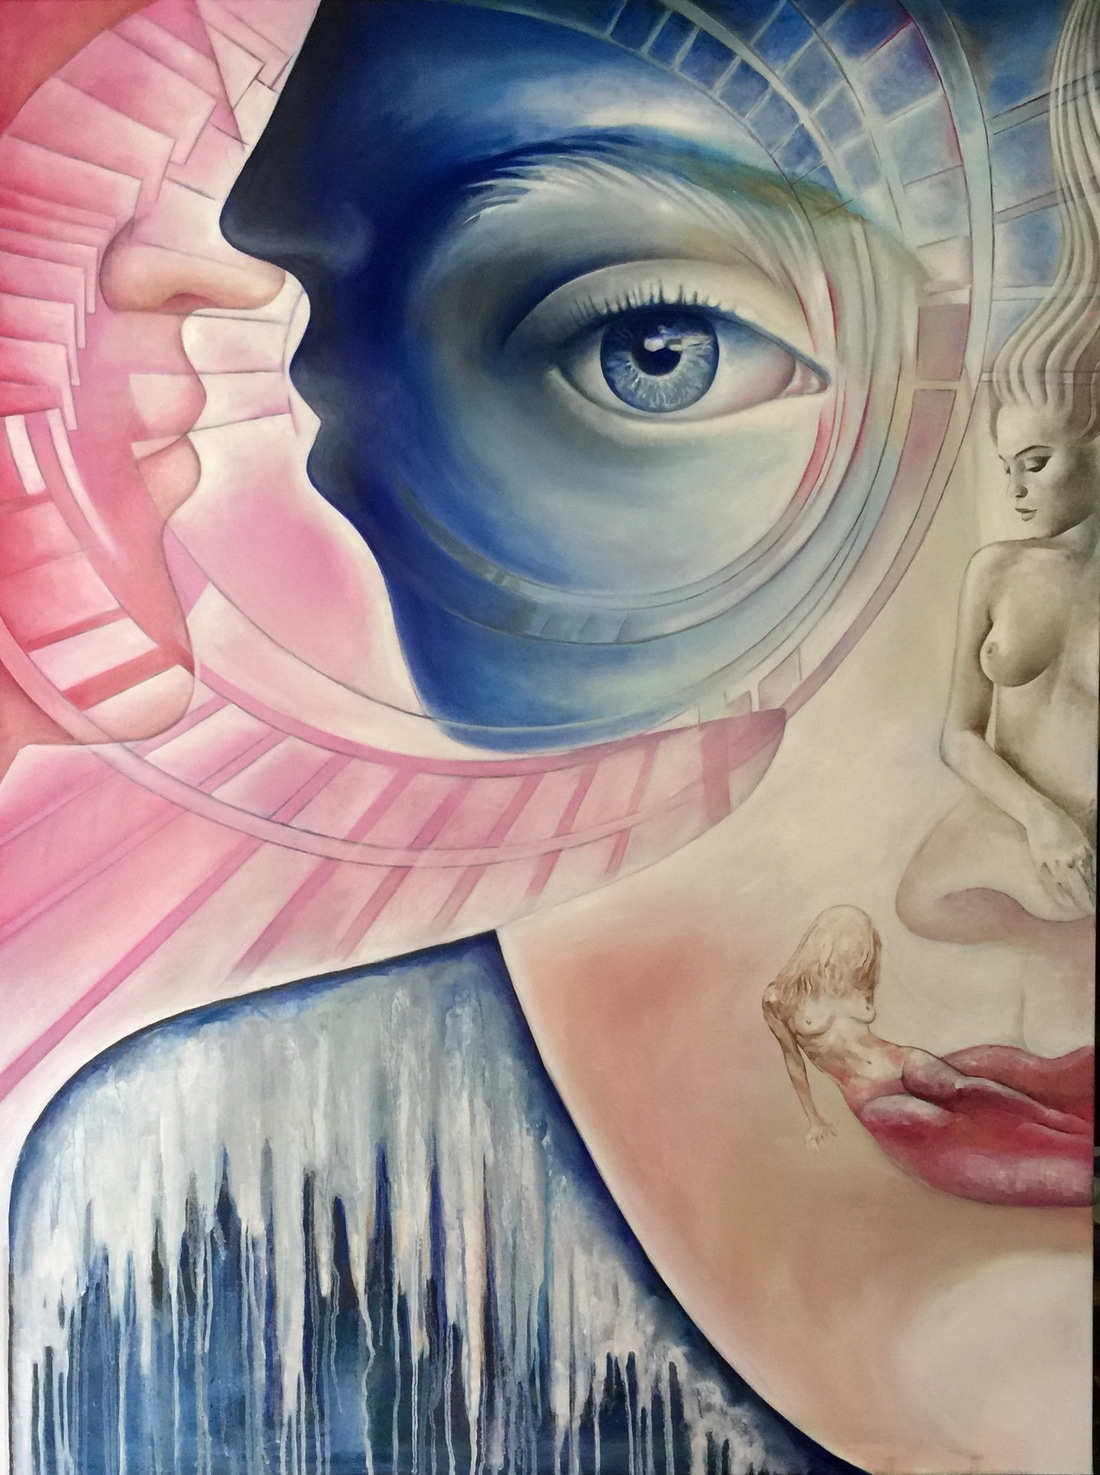 Andromeda 2 by Fatima Azimova - Oil on canvas 36x48 inches